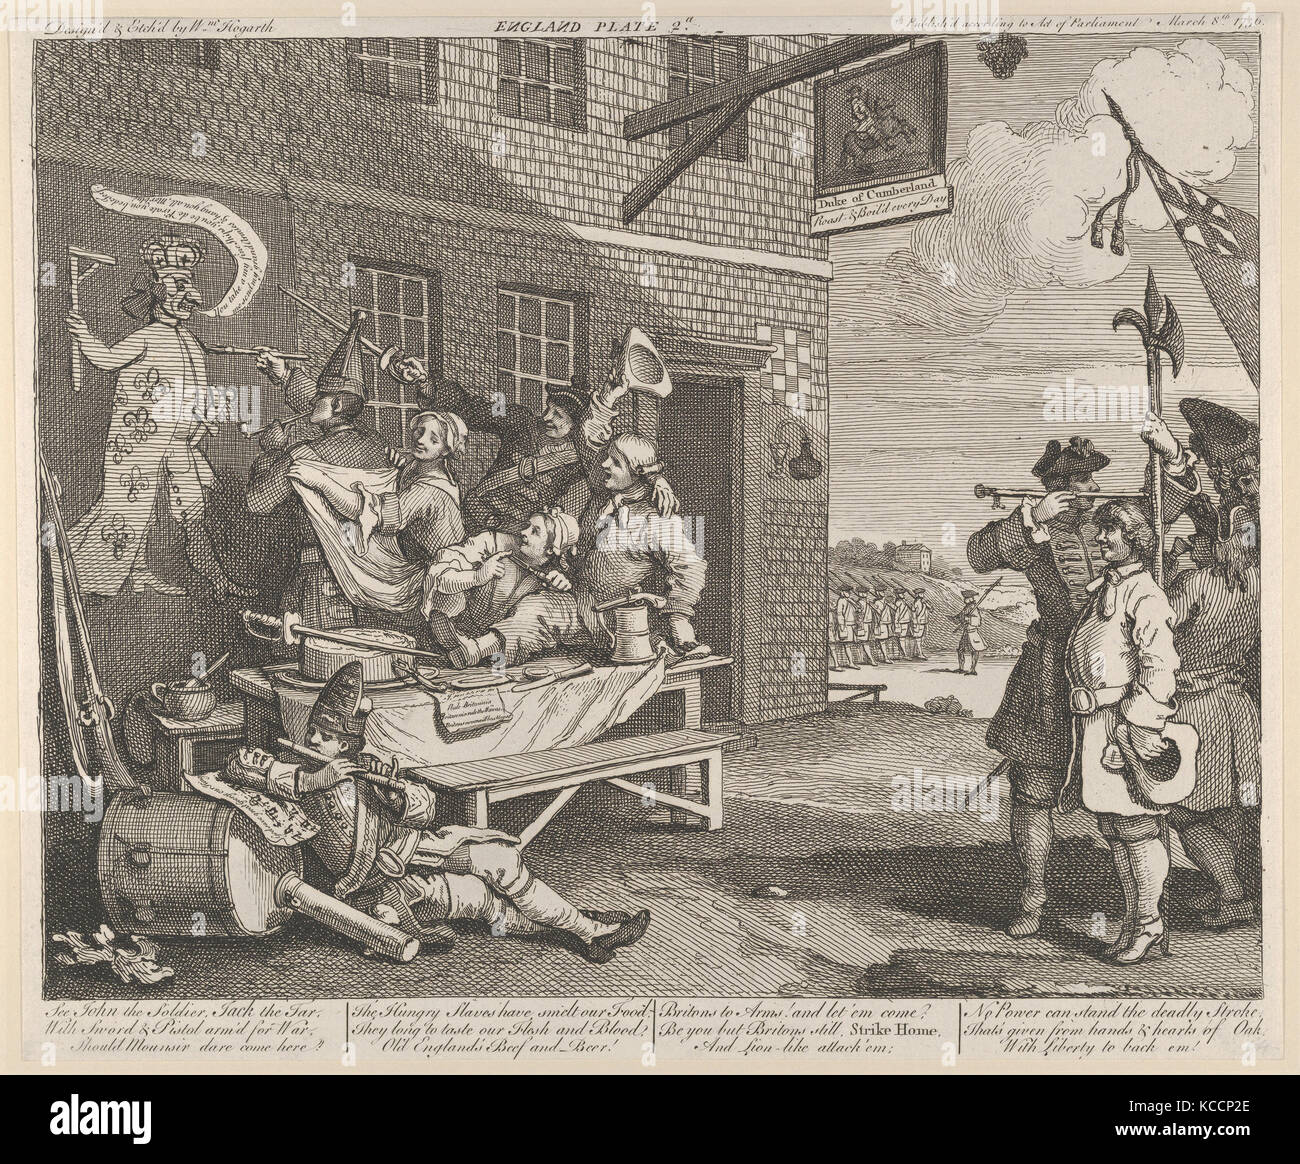 The Invasion, Plate 2: England, William Hogarth, March 8, 1756